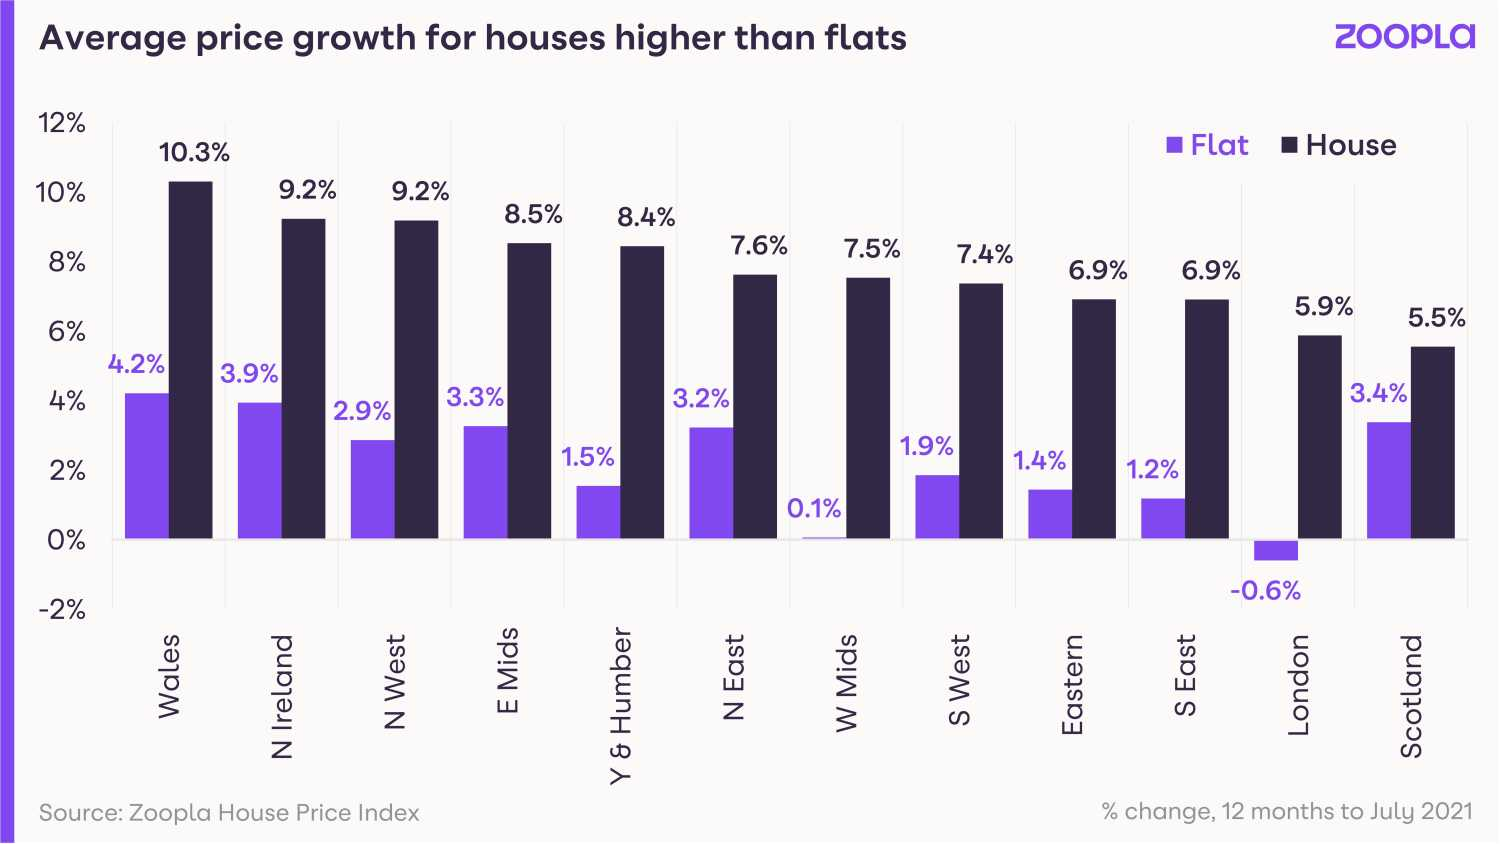 Average house price for houses higher than flats